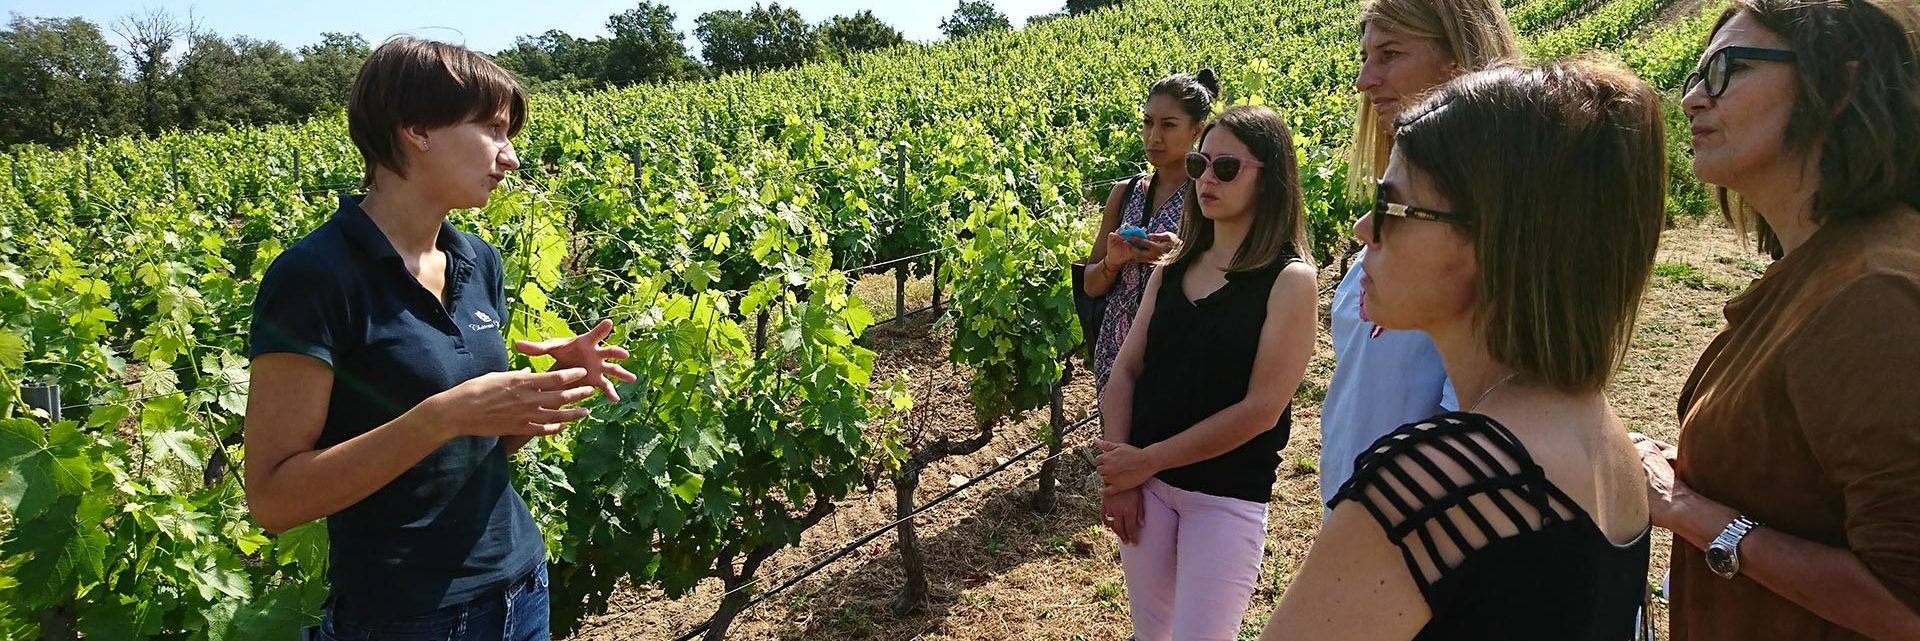 Guided tours in the vineyards at Roquebrune sur Argens